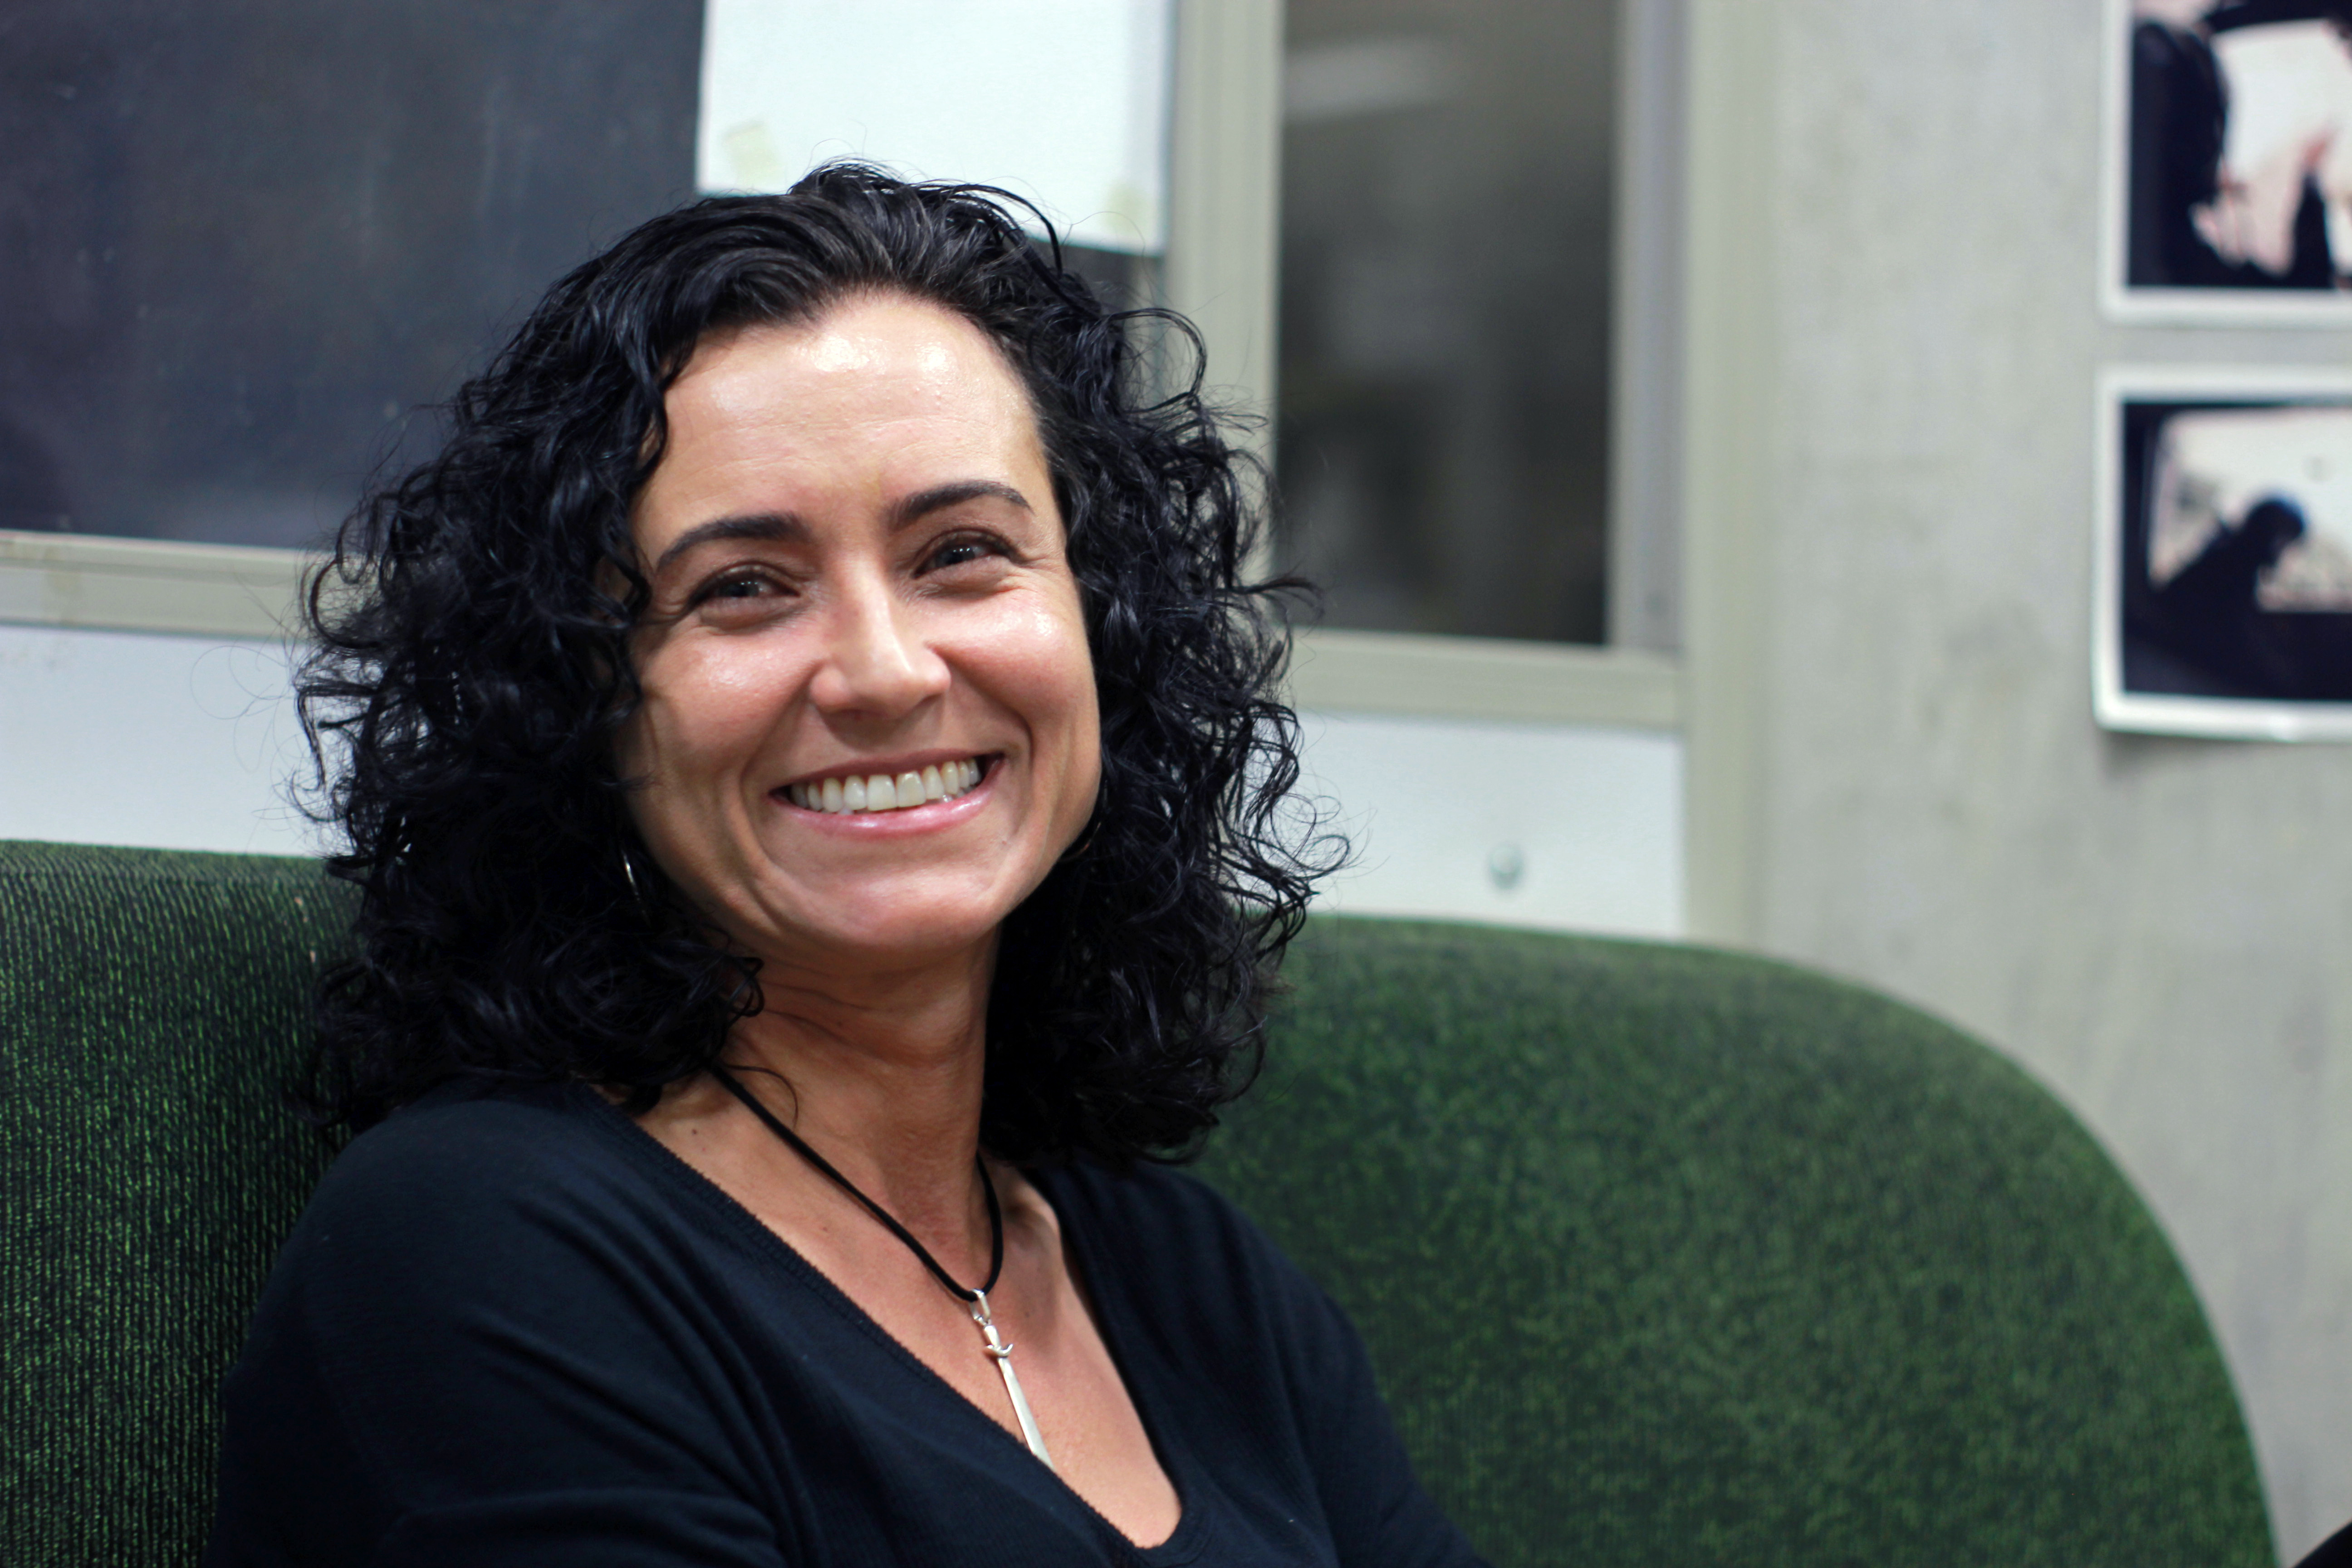 Prof. Libéria Neves